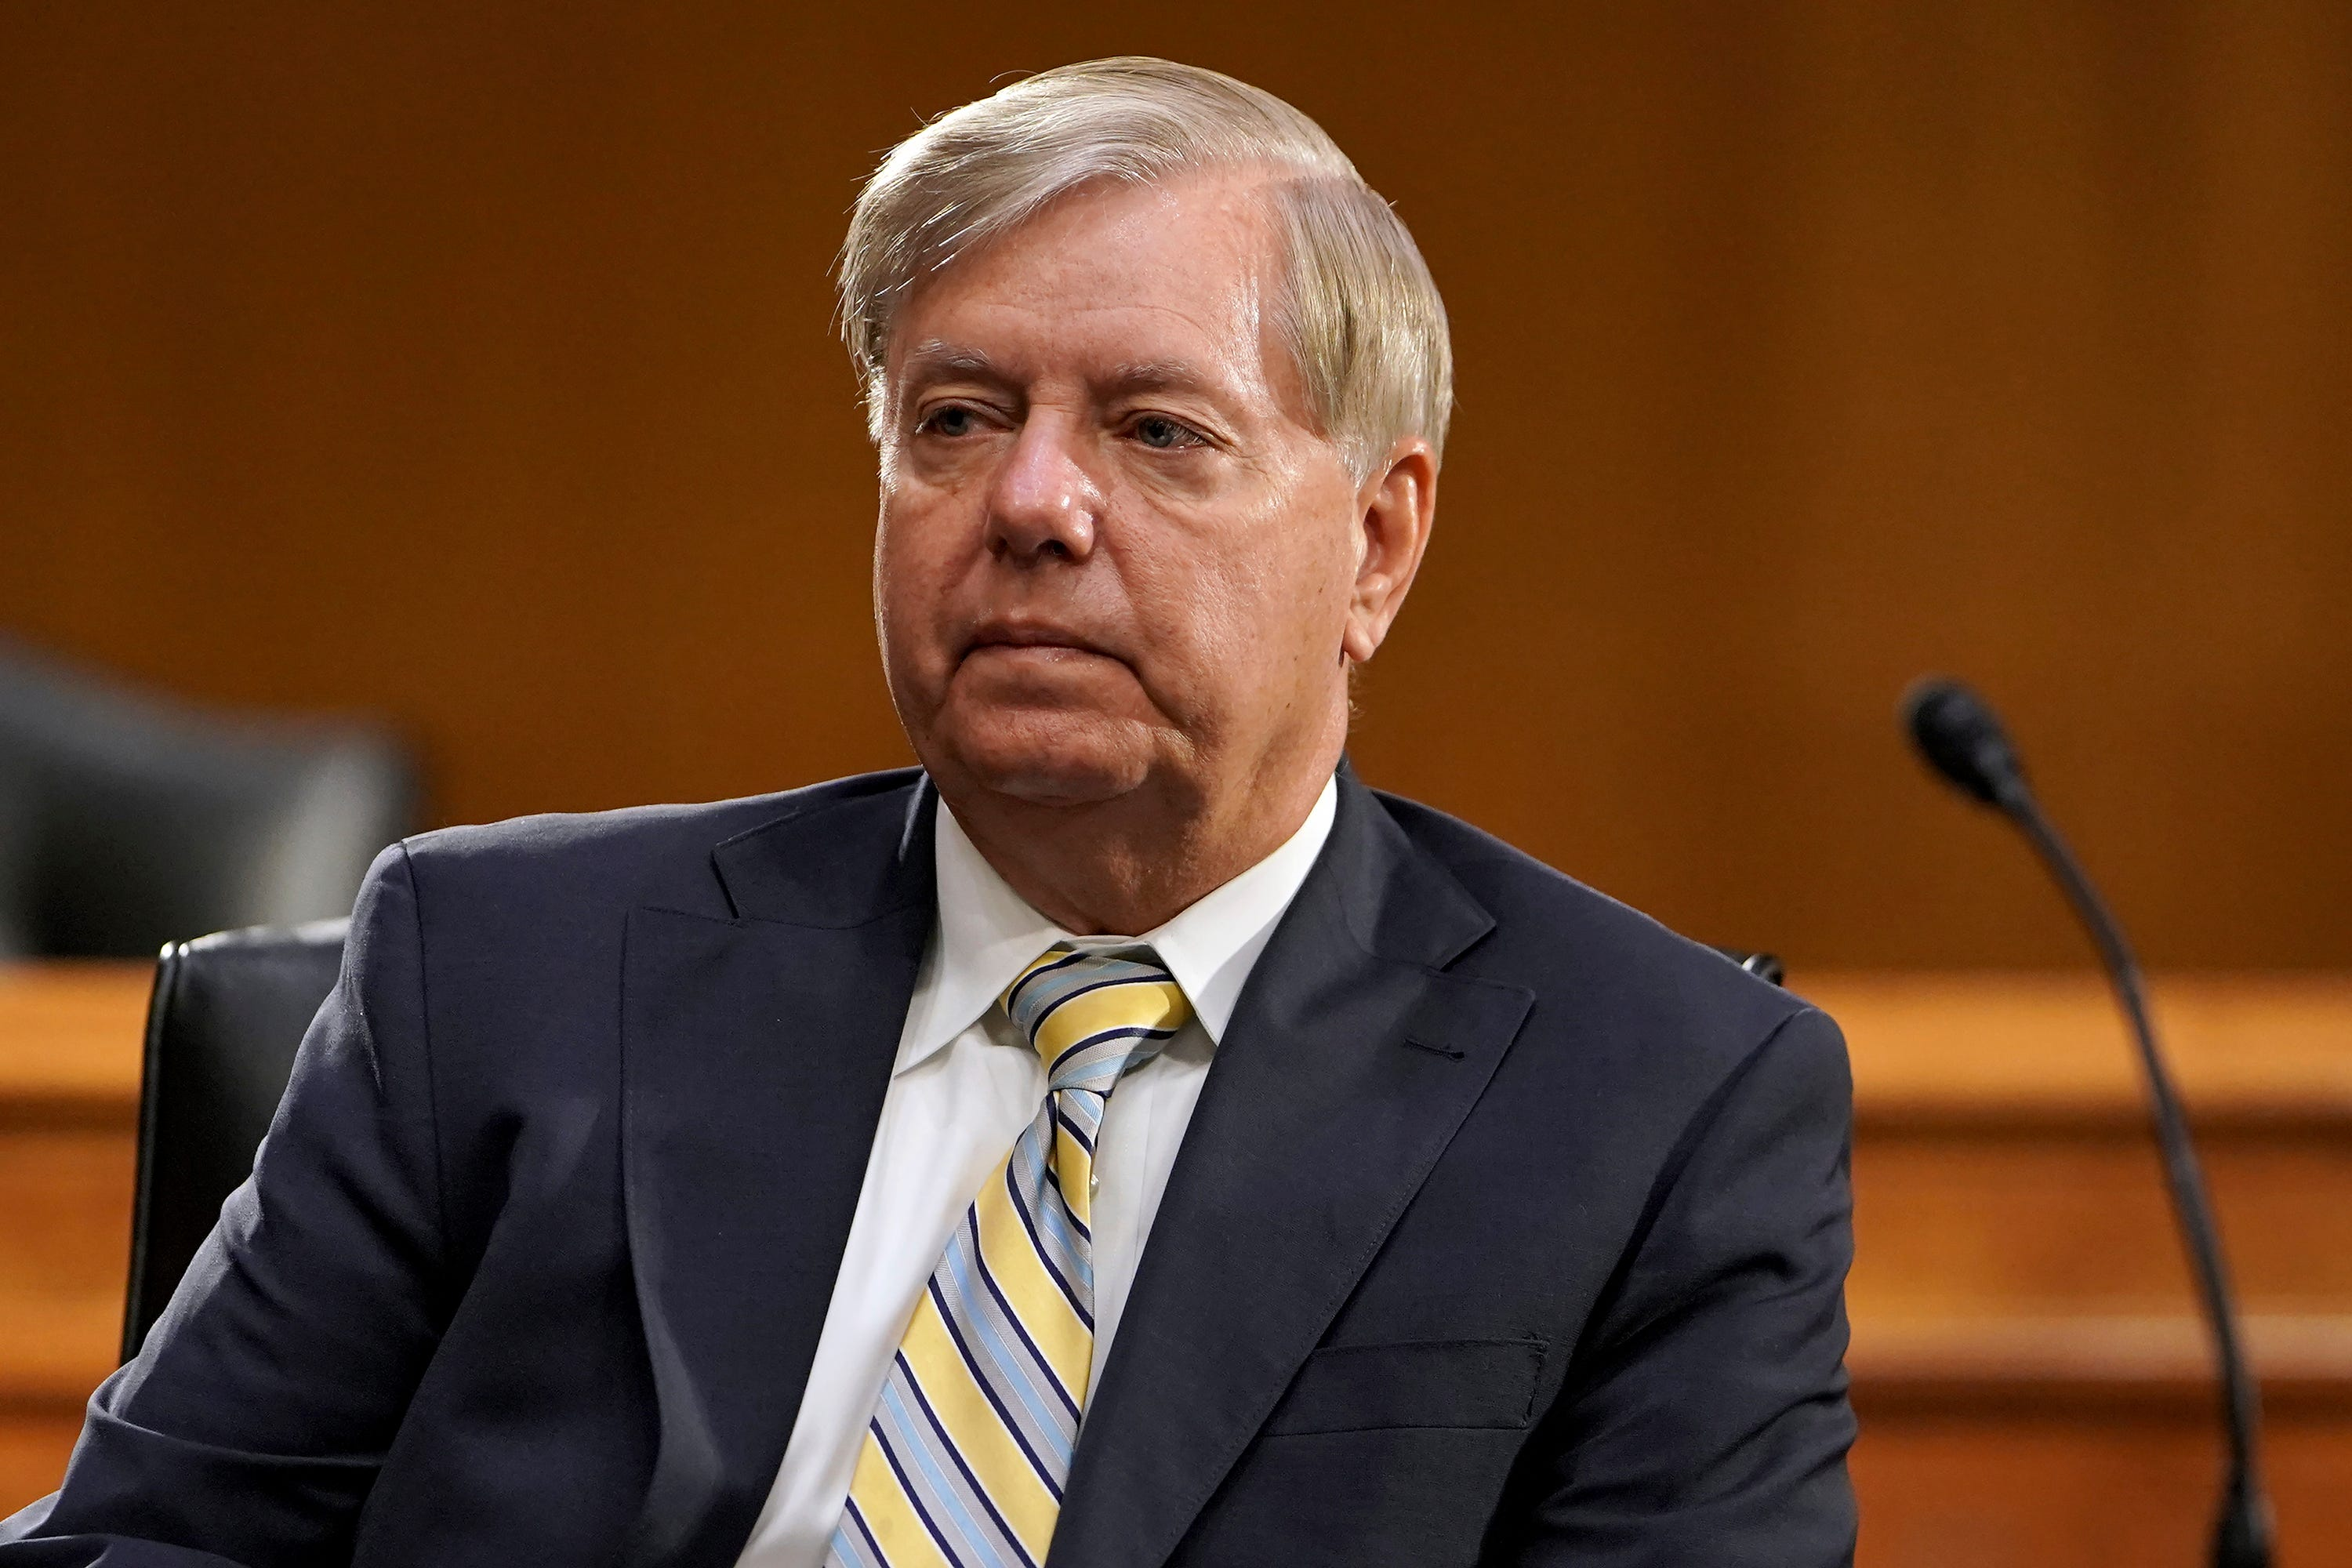 Sen. Lindsey Graham holds one-point lead in tight SC race for reelection, poll finds